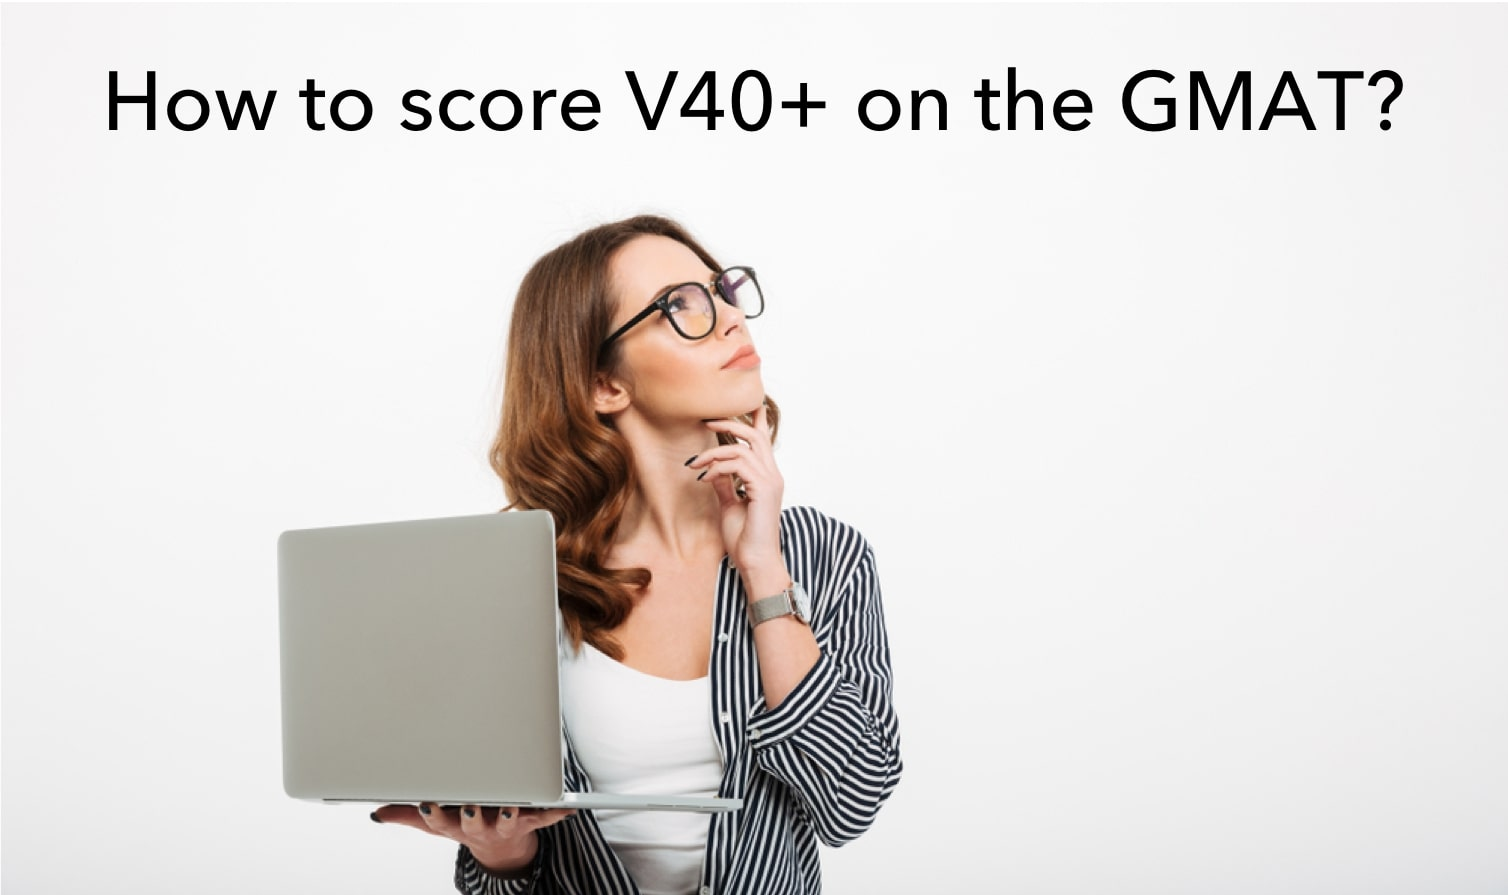 GMAT Verbal - How to score above V40 - Tips from V40+